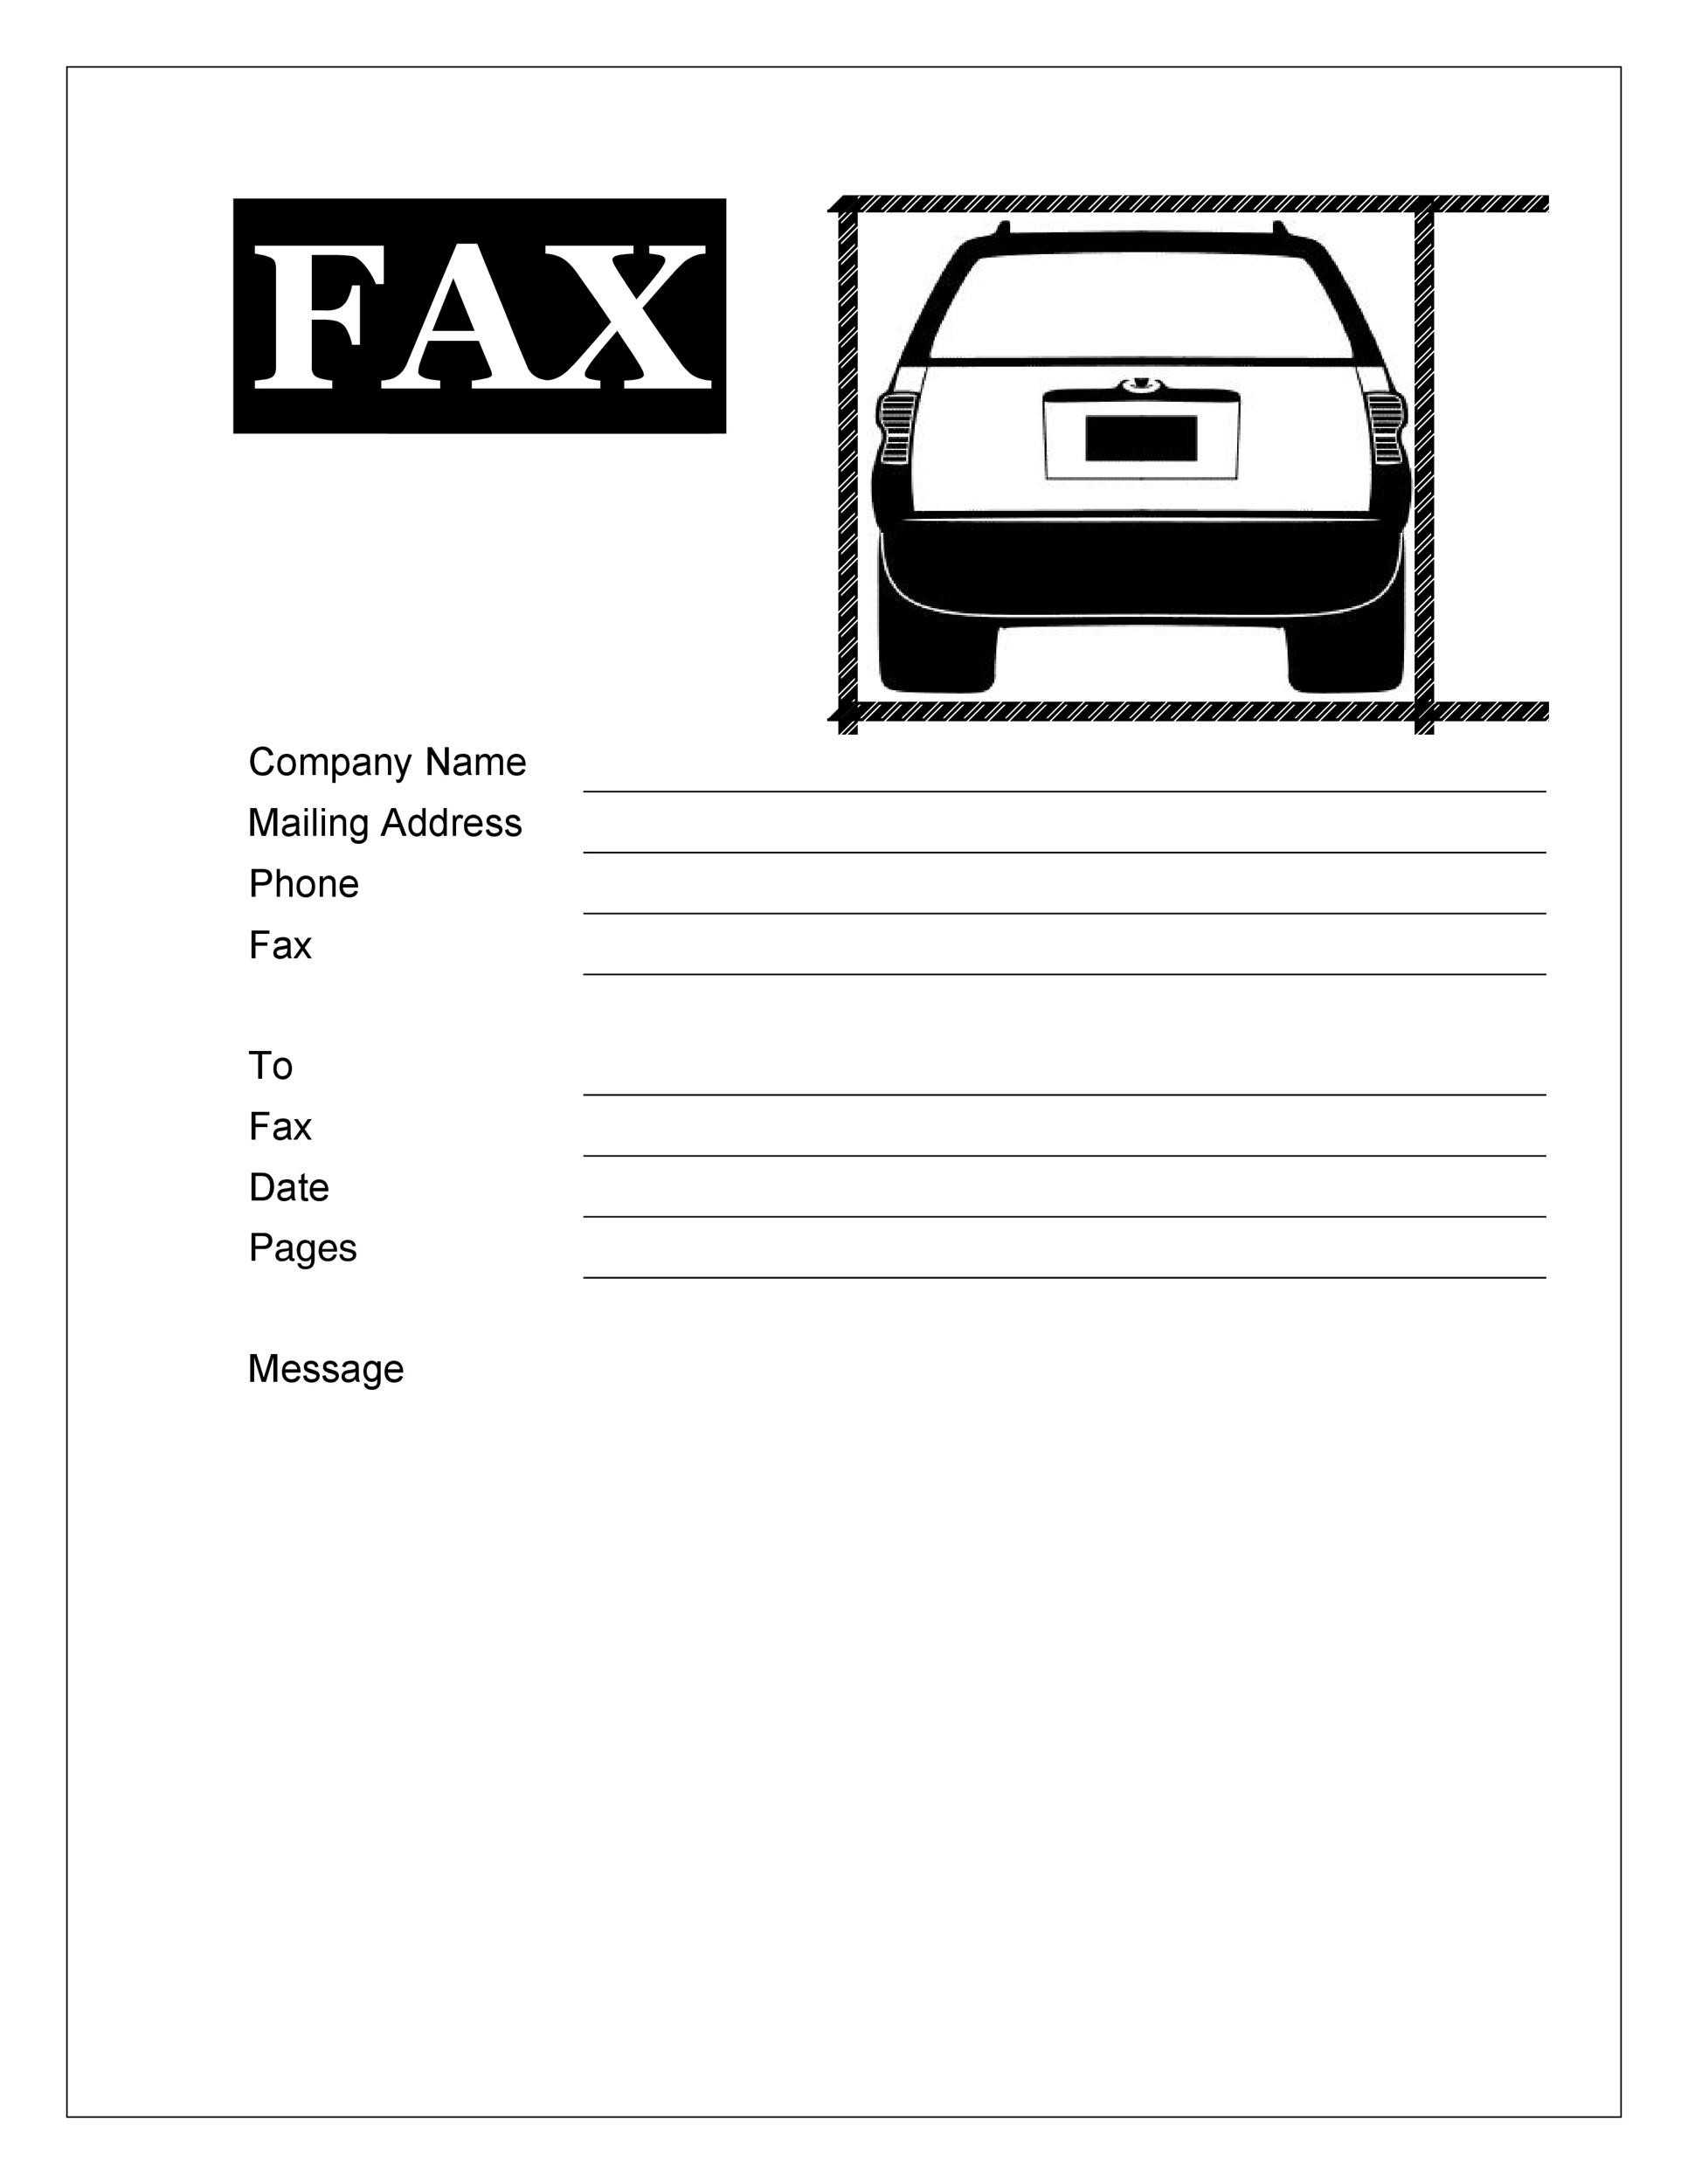 Fax Cover Sheet Template 20